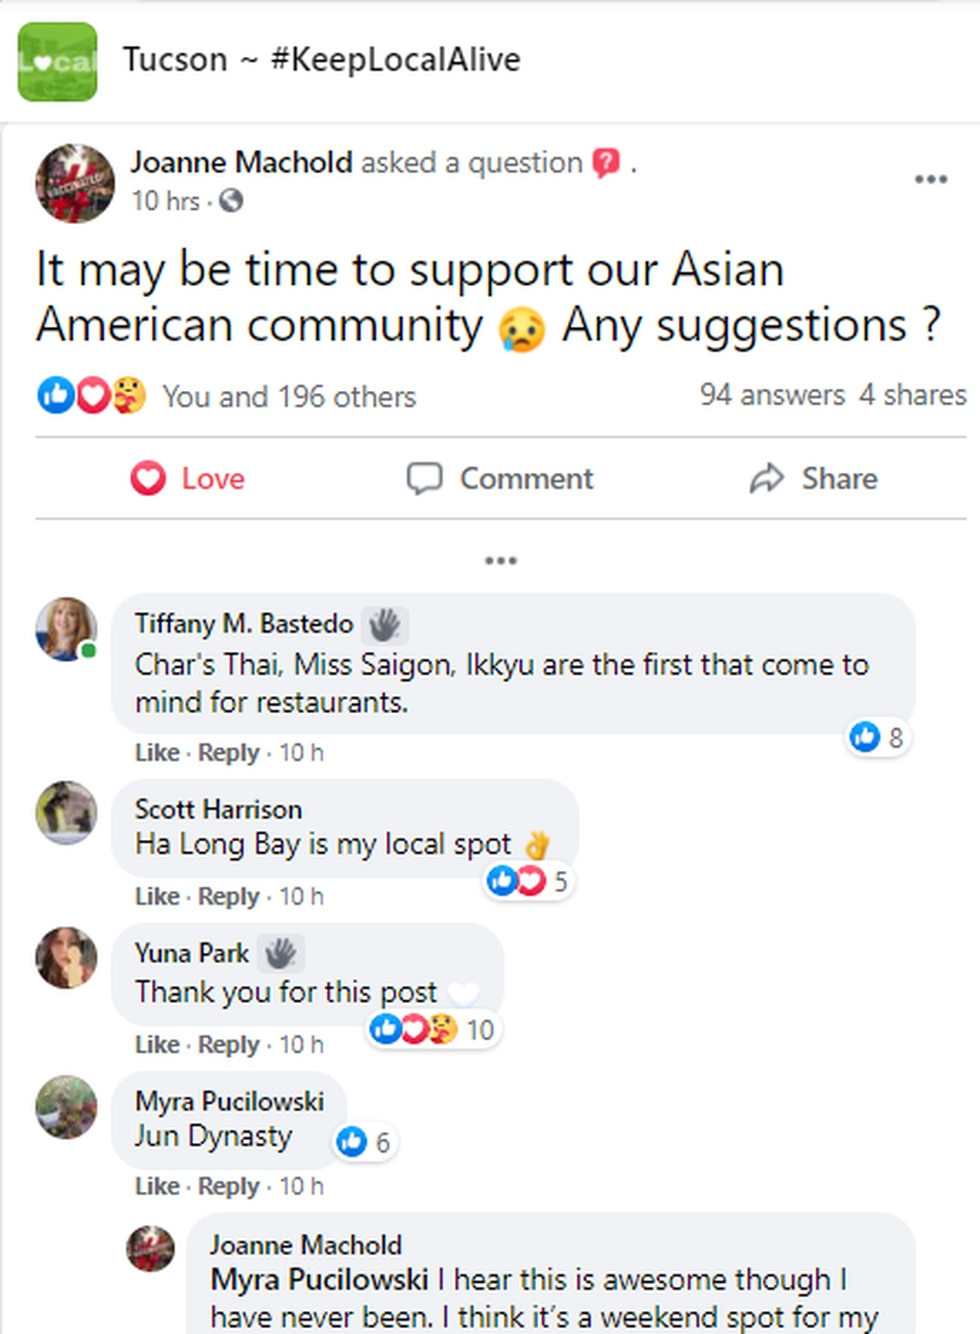 Post pushes to support Asian American businesses